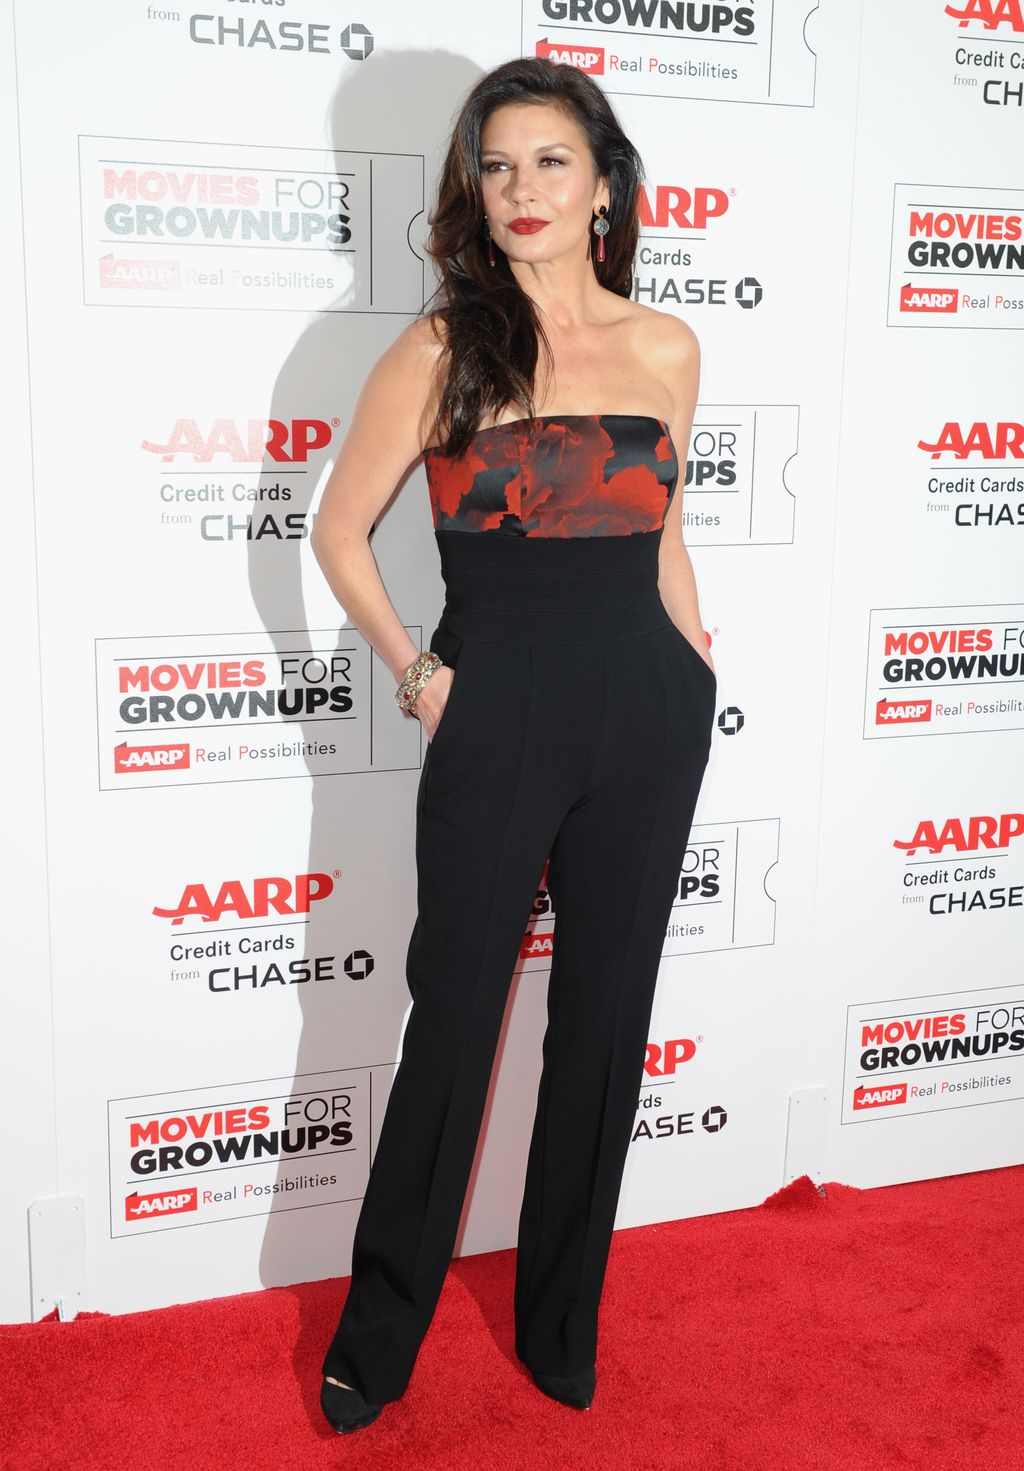 BEVERLY HILLS, CA - FEBRUARY 08:  Actress Catherine Zeta-Jones attends AARP's 15th Annual Movies For Grownups Awards at the Beverly Wilshire Four Seasons Hotel on February 8, 2016 in Beverly Hills, California.  (Photo by Joshua Blanchard/Getty Images)